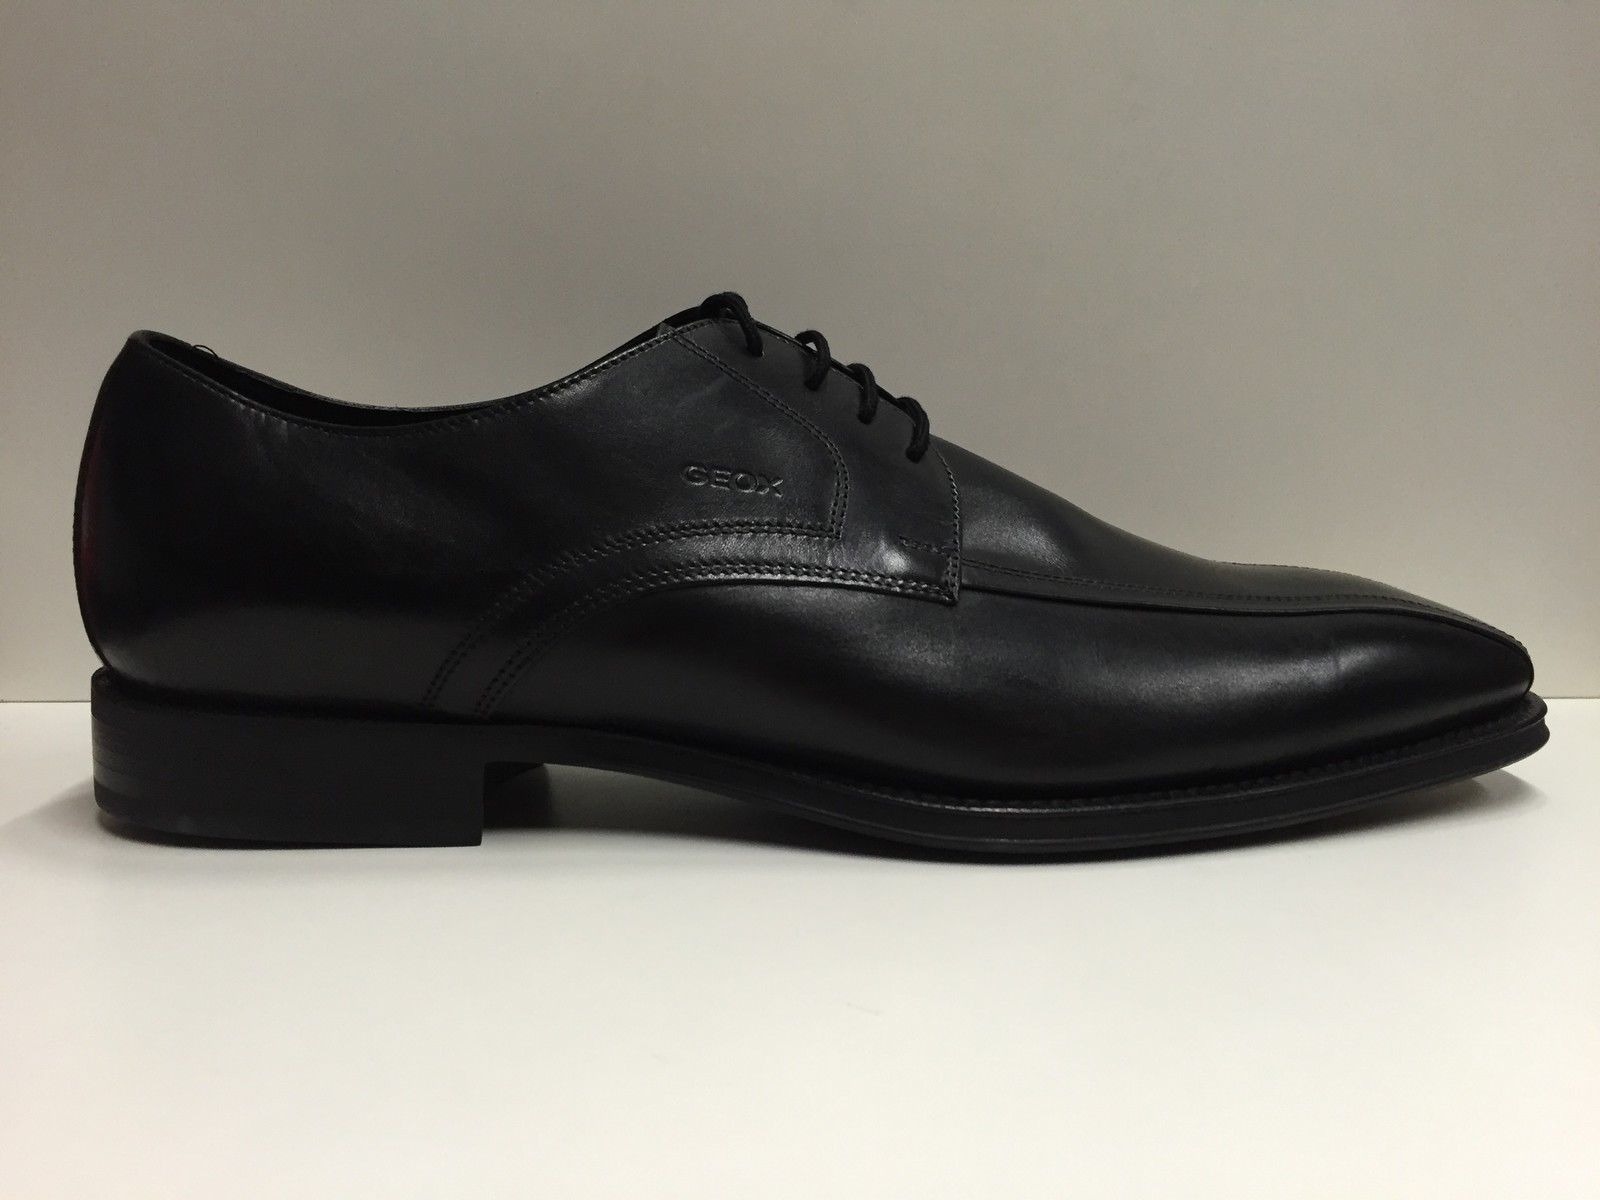 aa62297a72 SCARPE ELEGANTI UOMO GEOX ORIGINAL NEW TREND U81V9C NERO PELLE SHOES LEATHER  MAN - mainstreetblytheville.org